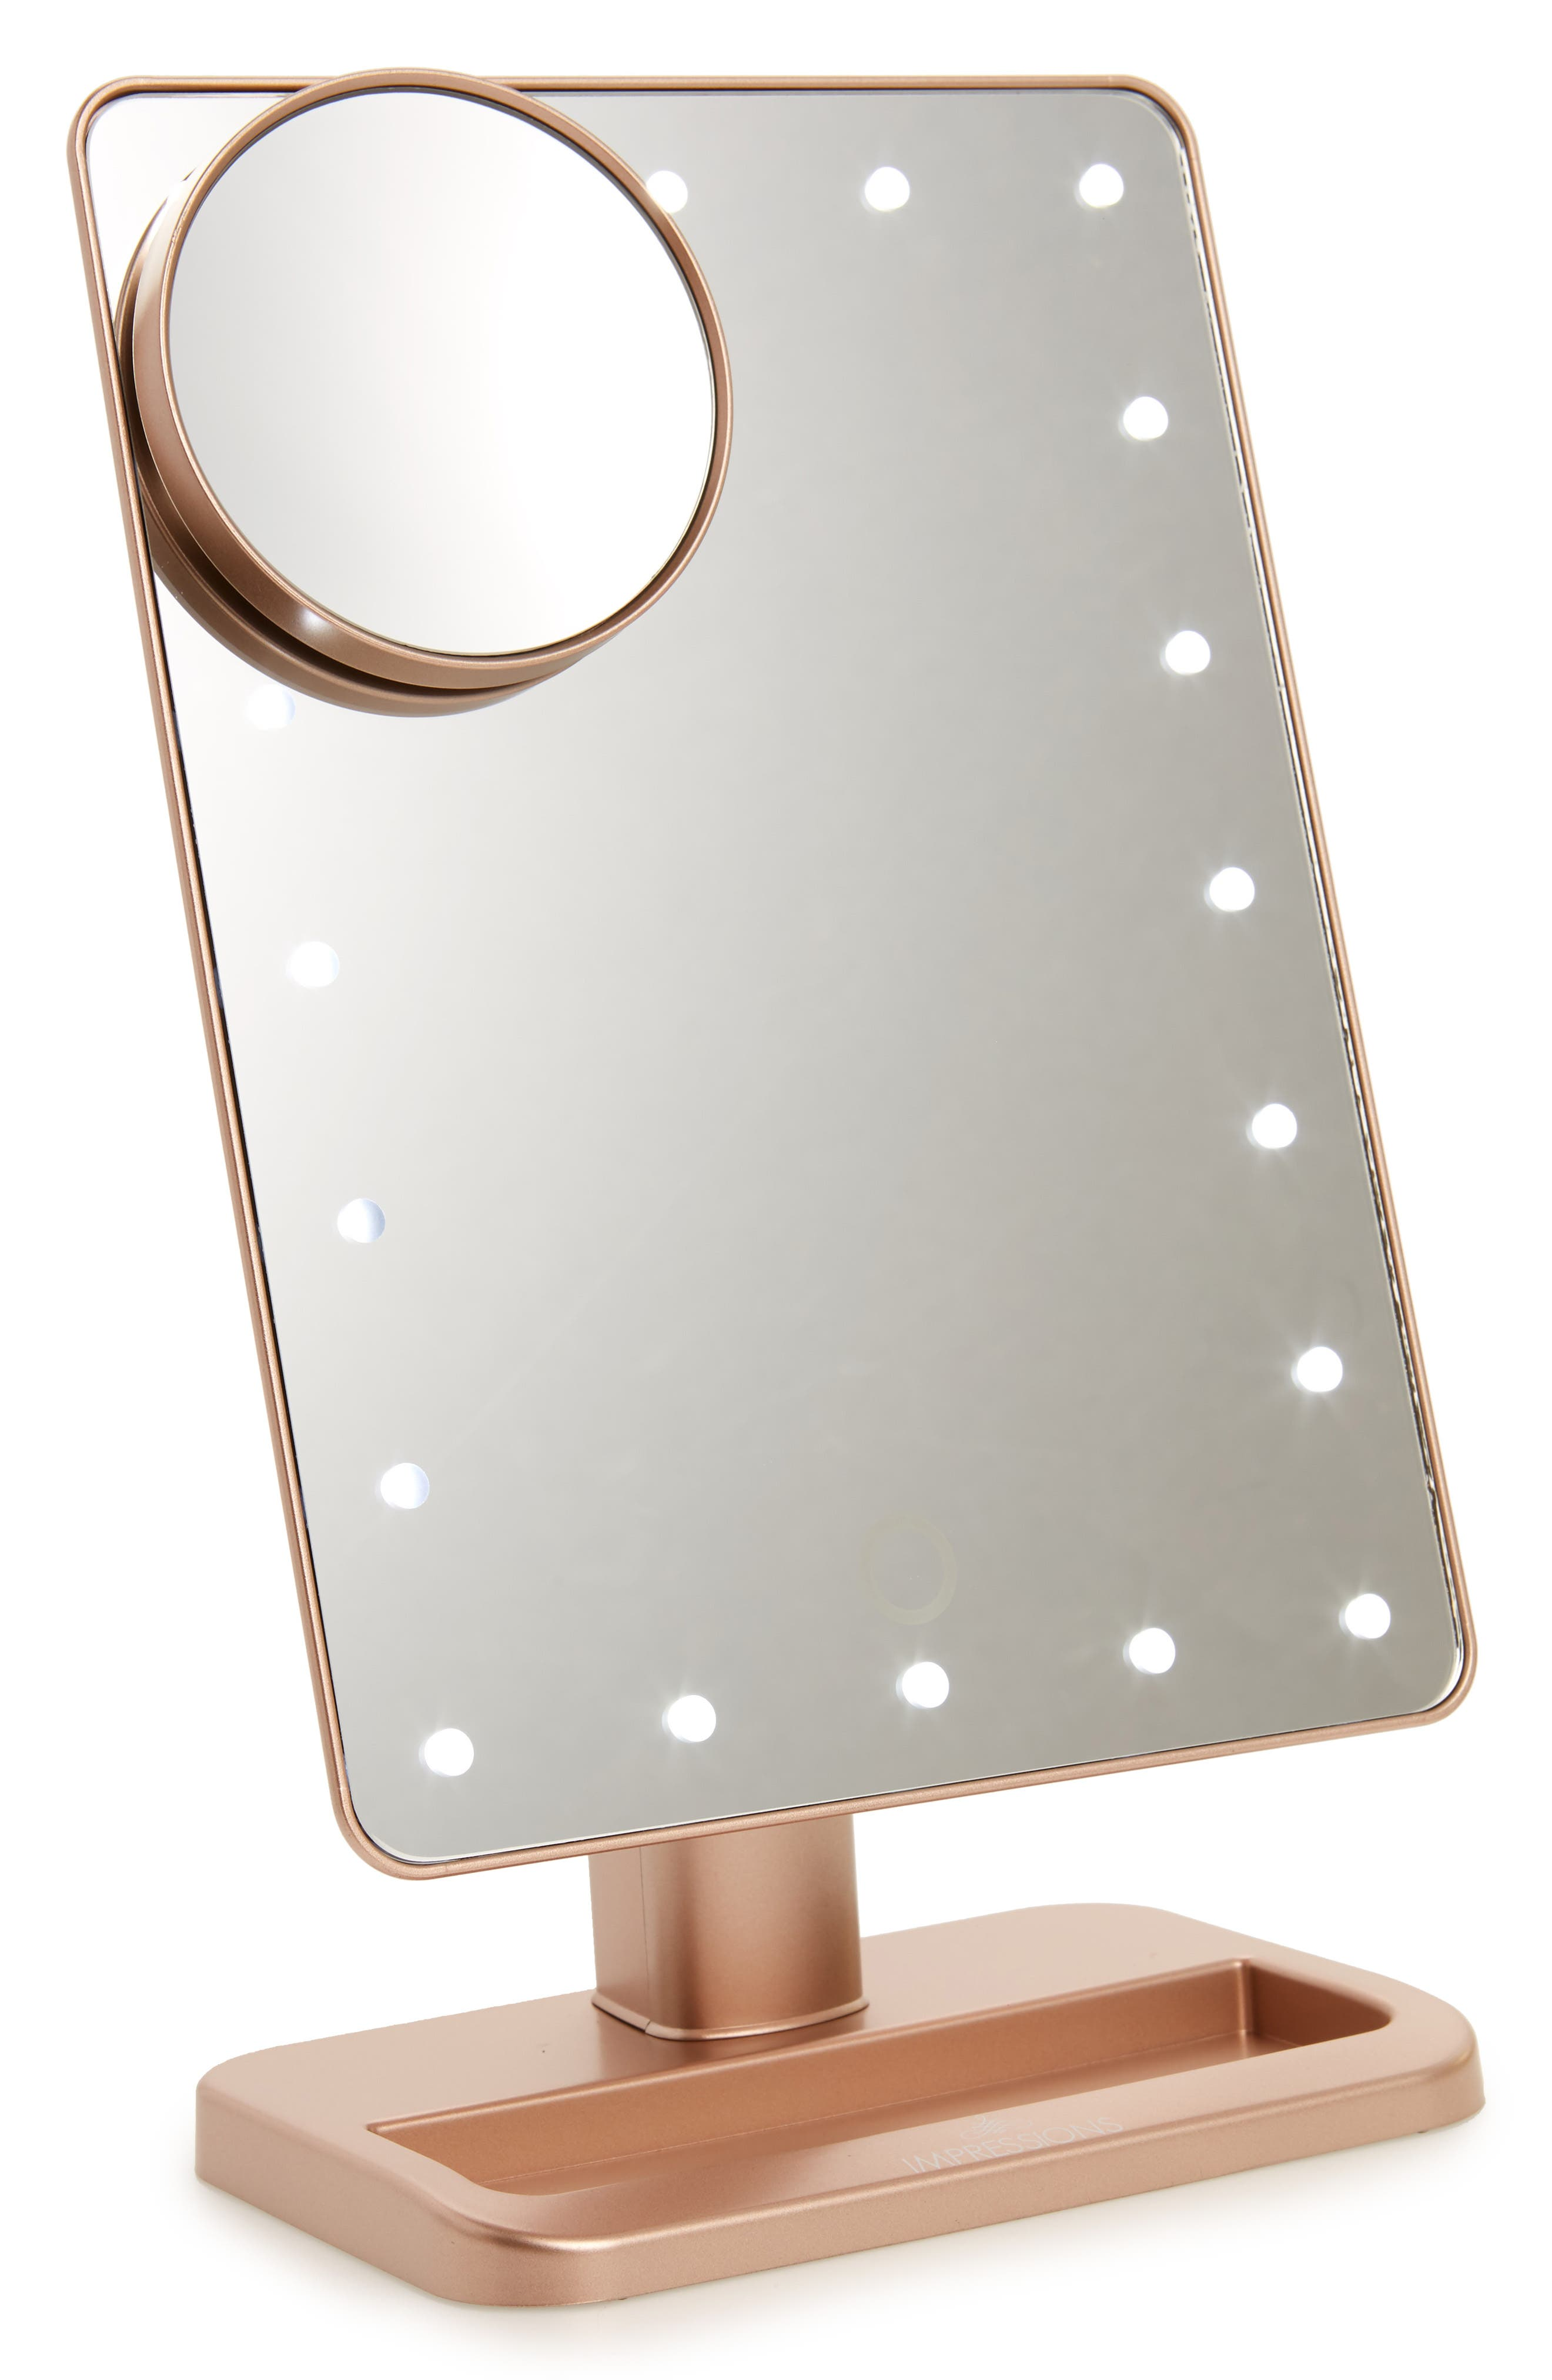 Main Image - Impressions Vanity Co. Touch XL Dimmable LED Makeup Mirror with Removable 5x Mirror